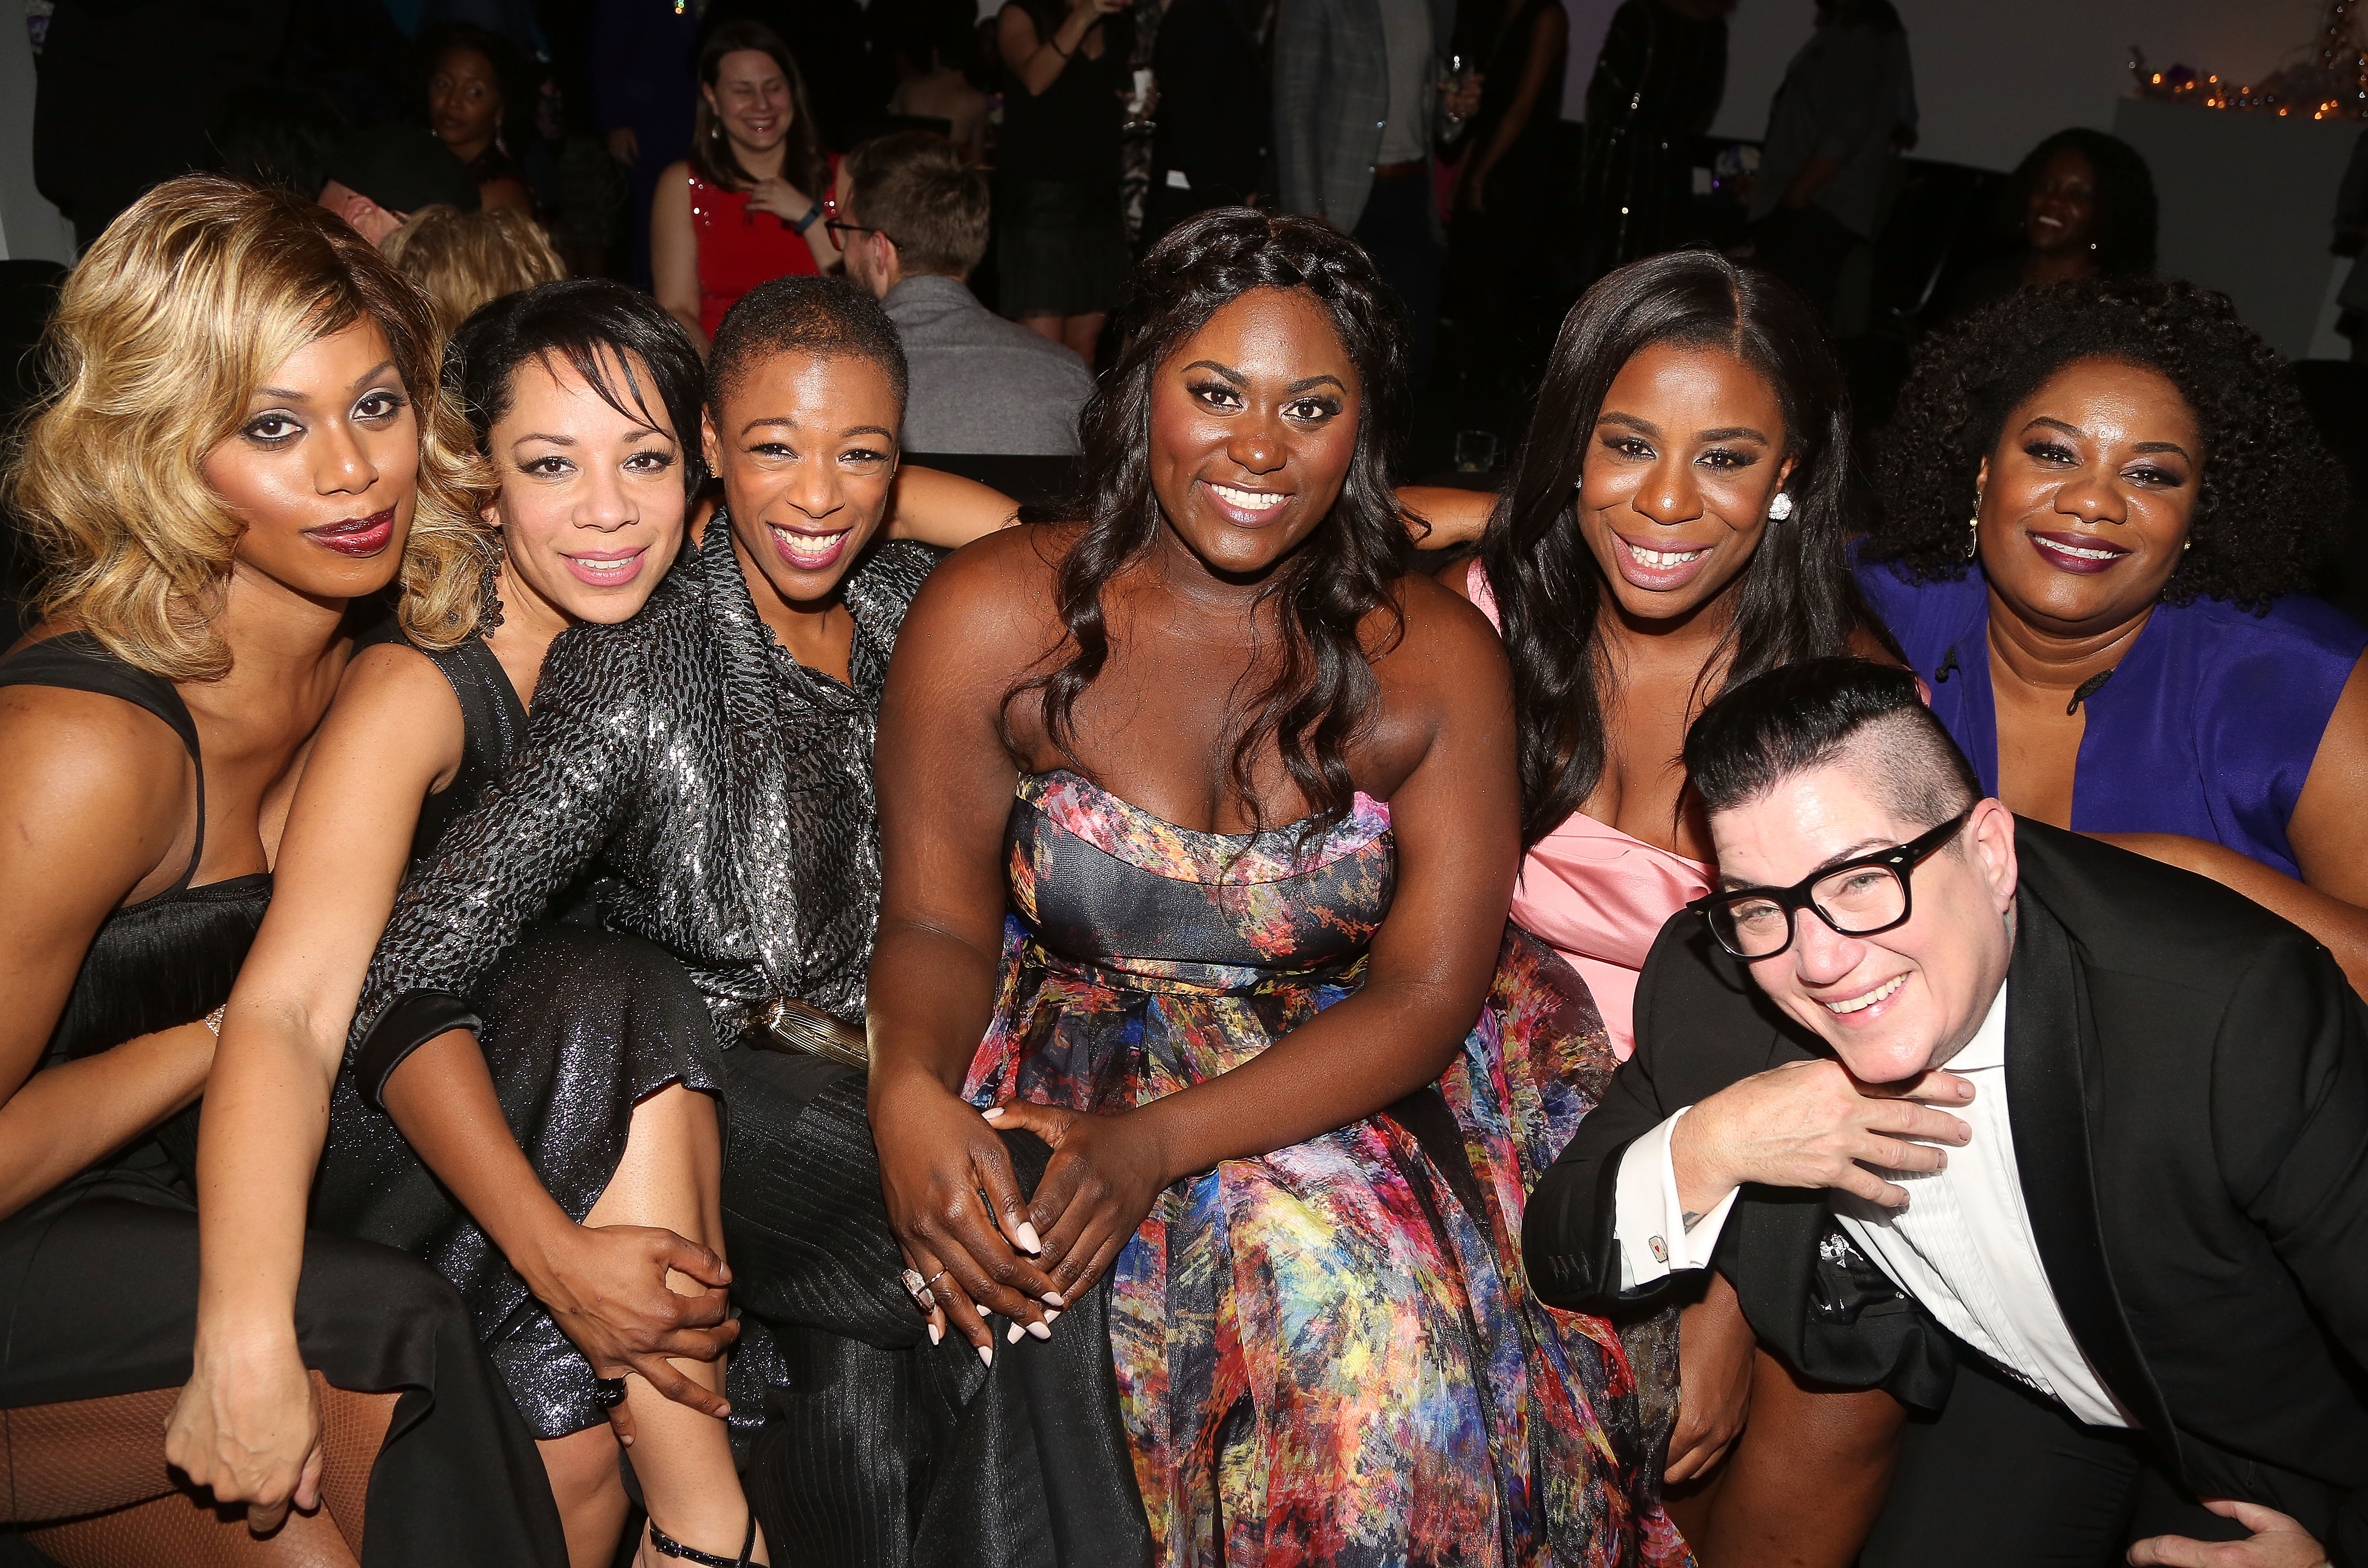 (L-R)'Orange is The New Black' stars Laverne Cox, Selenis Leyva, Samira Wiley, Danielle Brooks, Uzo Aduba, Lea DeLaria and Adrienne Moore pose at the opening night after party for 'The Color Purple' on Broadway on Dec. 10, 2015 in New York City.